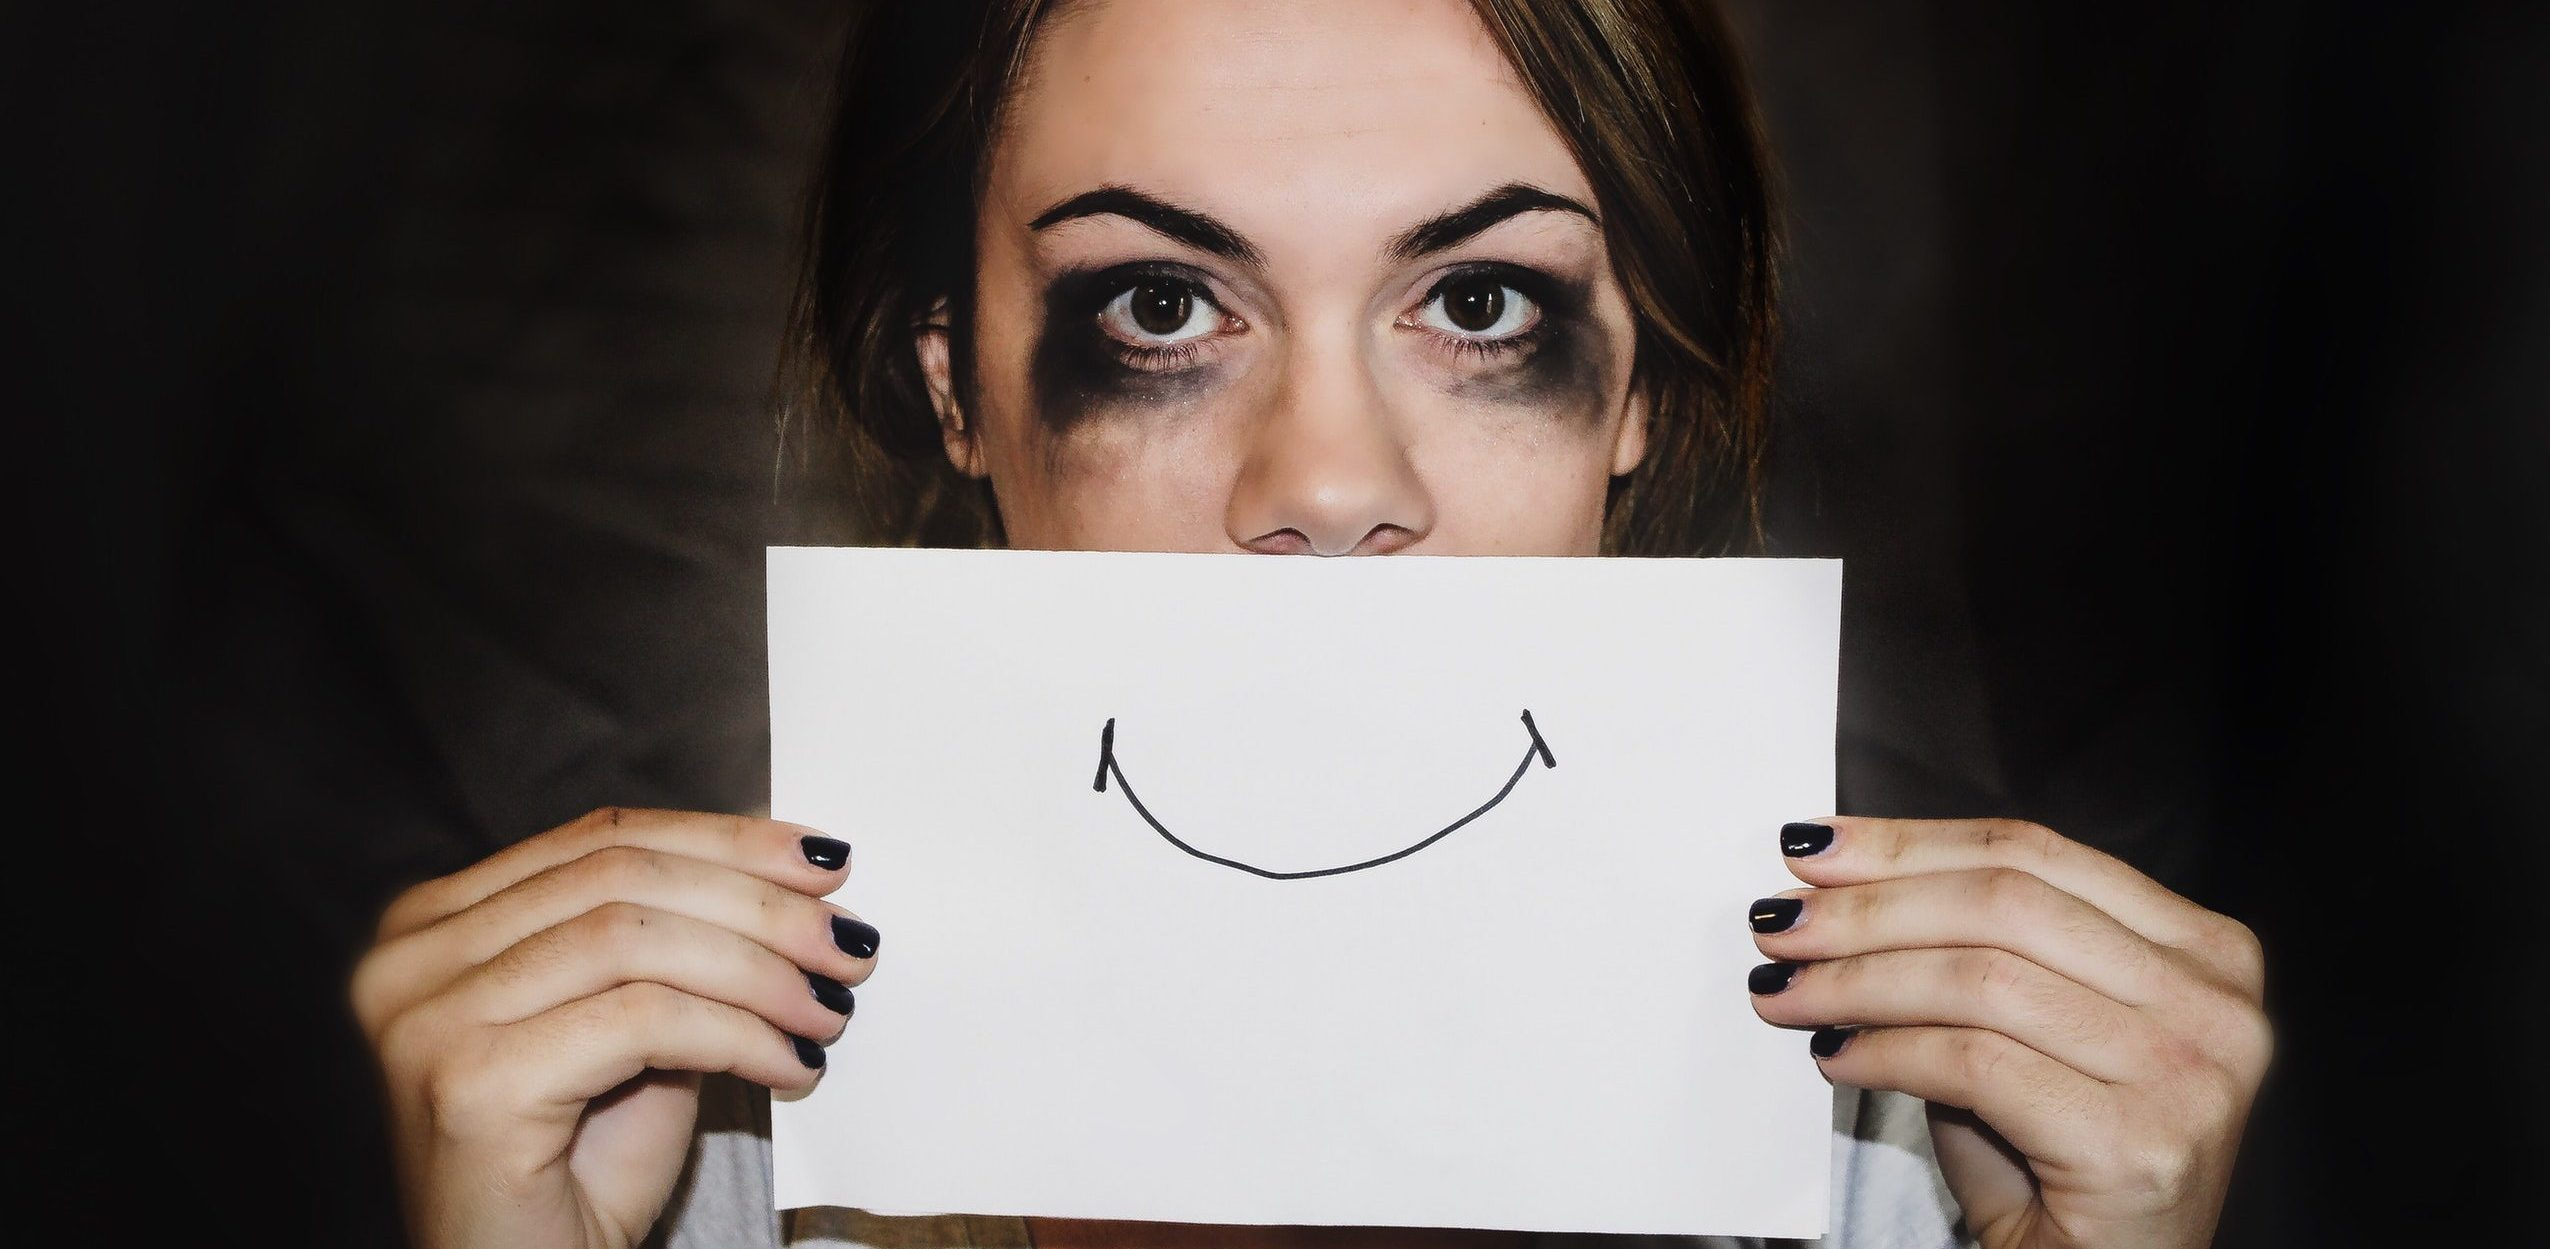 Low Self-Esteem Is a Serious Concern for Your Mental Health